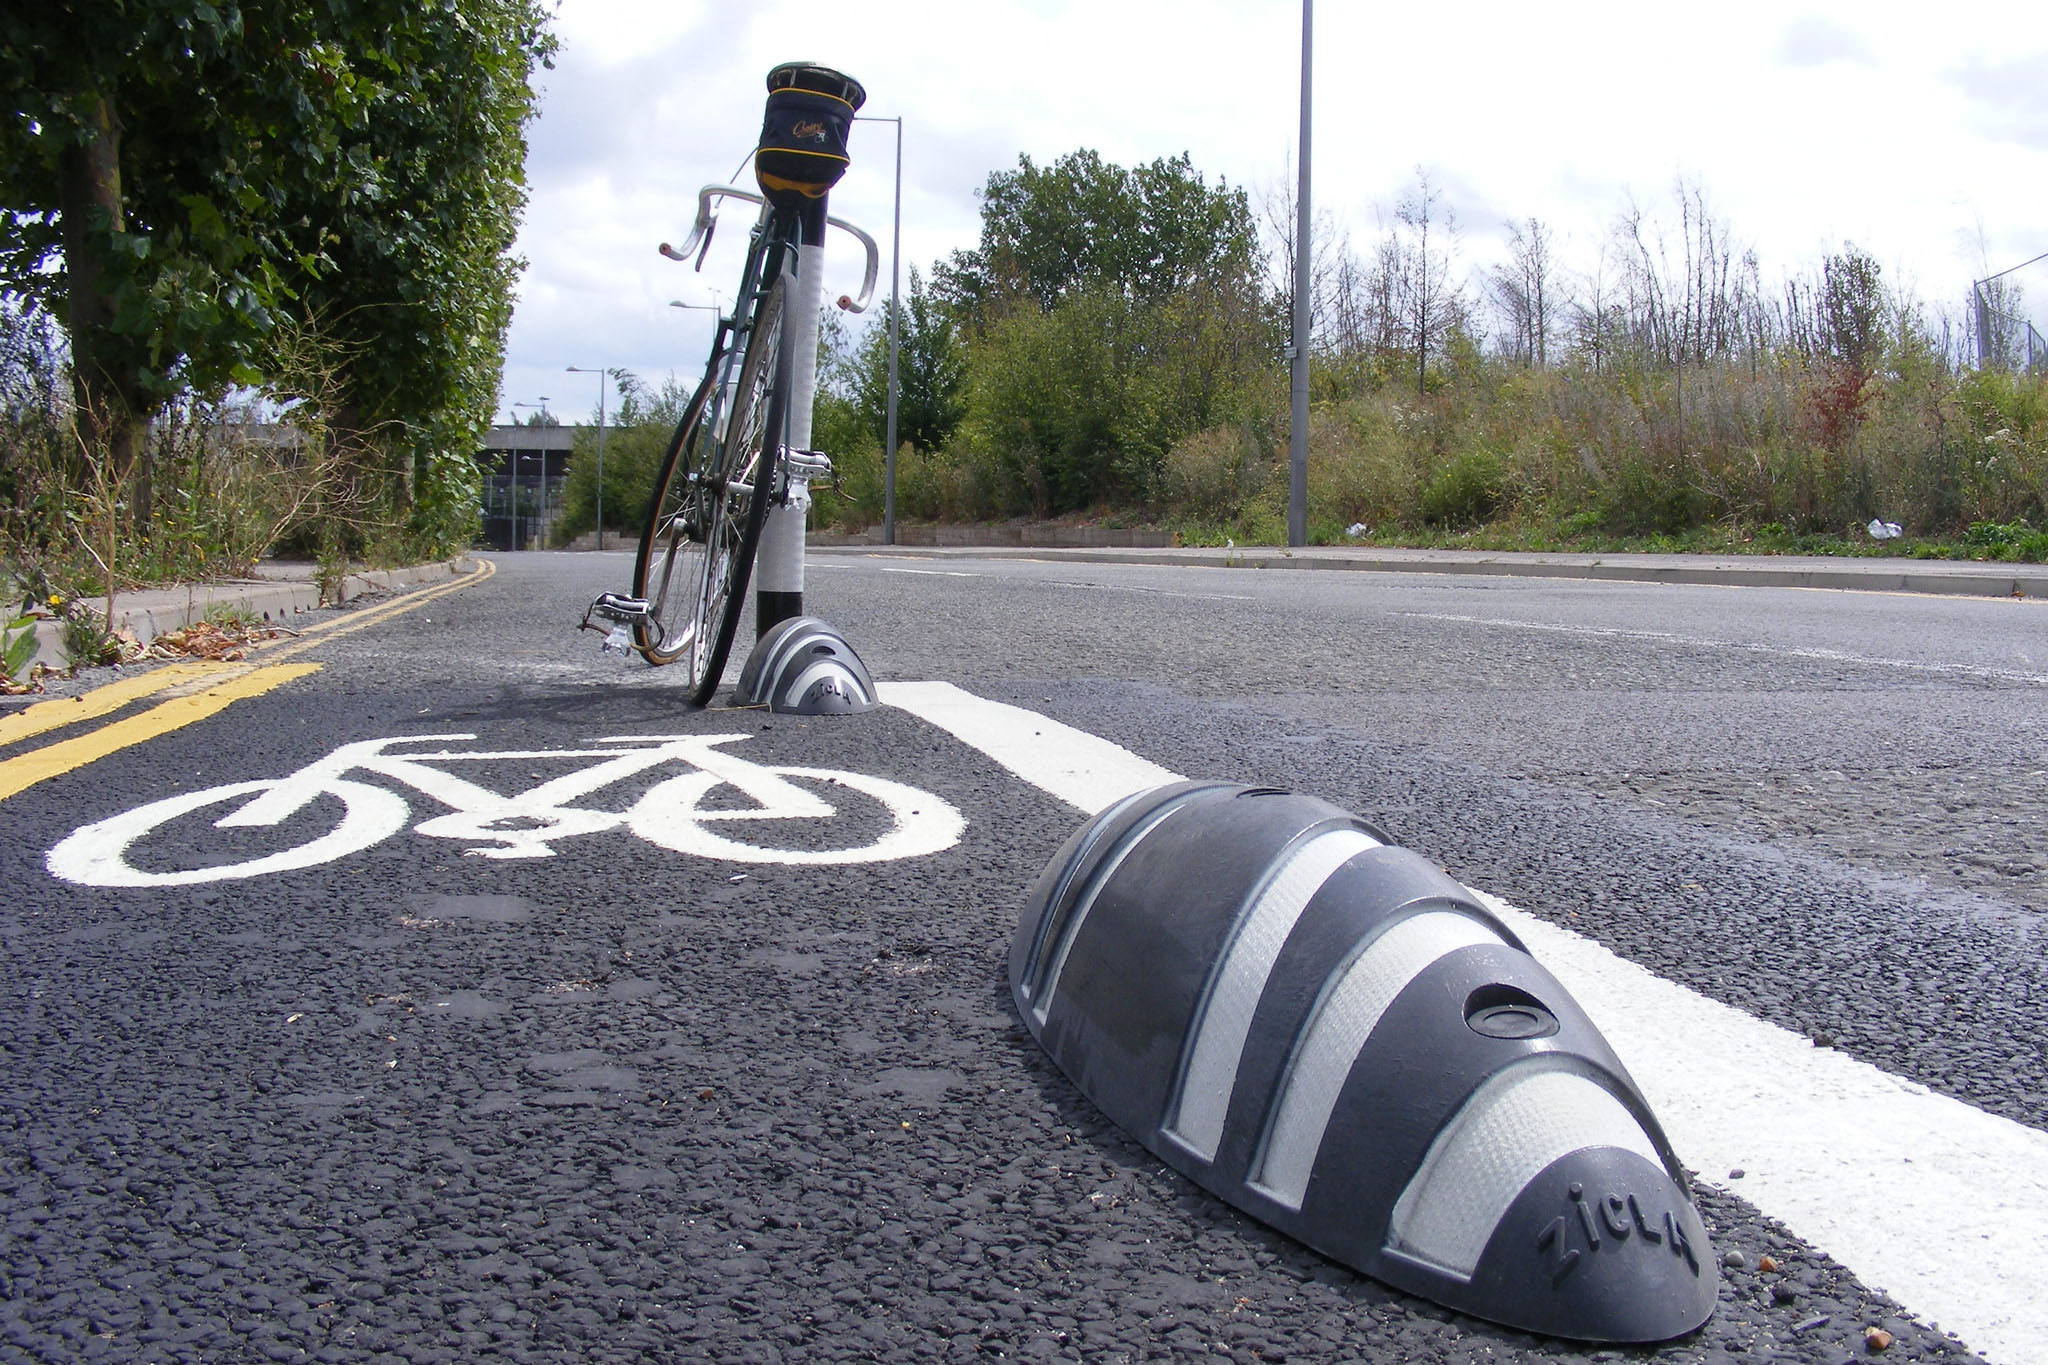 Cycle lane humps could be fatal for motorcyclists says MAG